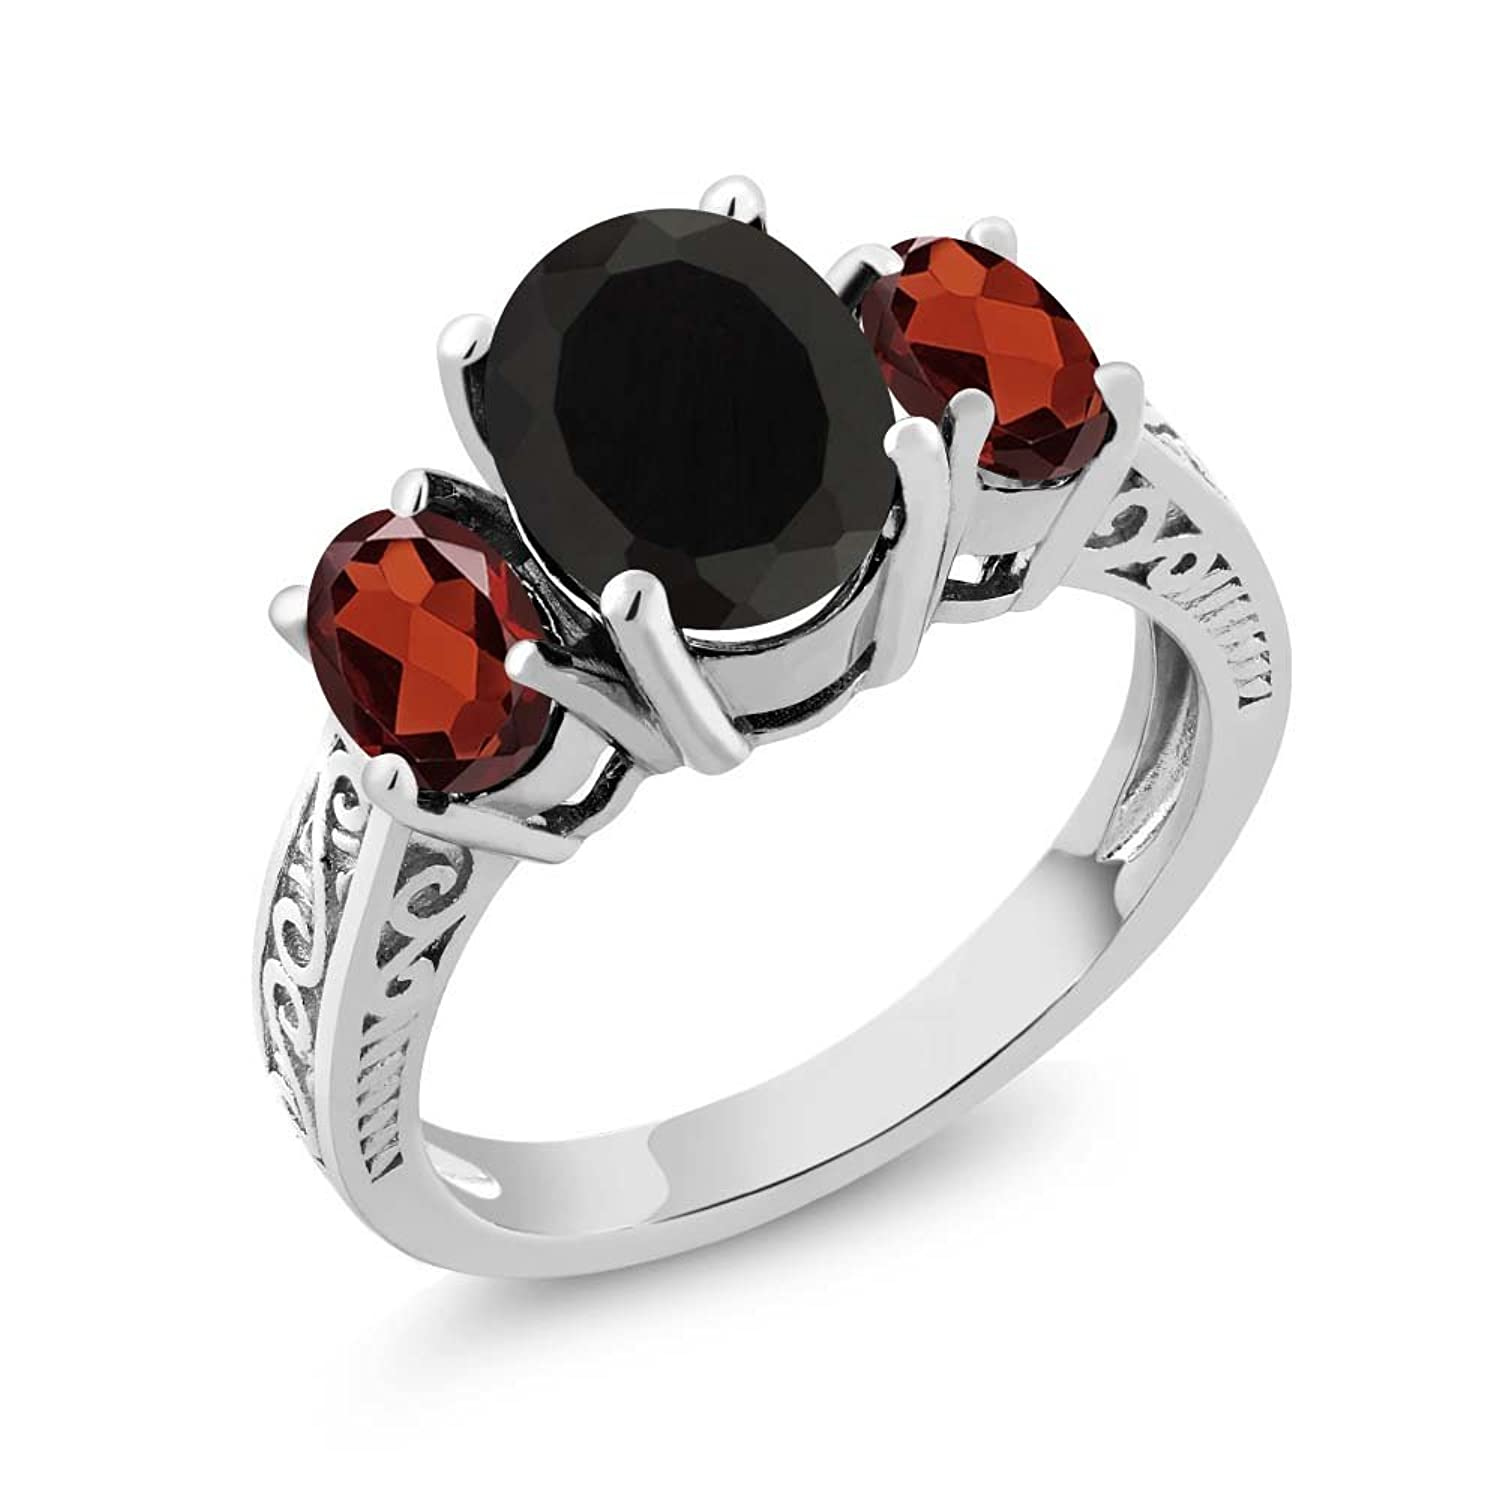 Sterling Silver Genuine Black Onyx & Red Garnet 3-Stone Women's Ring (2.73 cttw, Available in size 5, 6, 7, 8, 9)